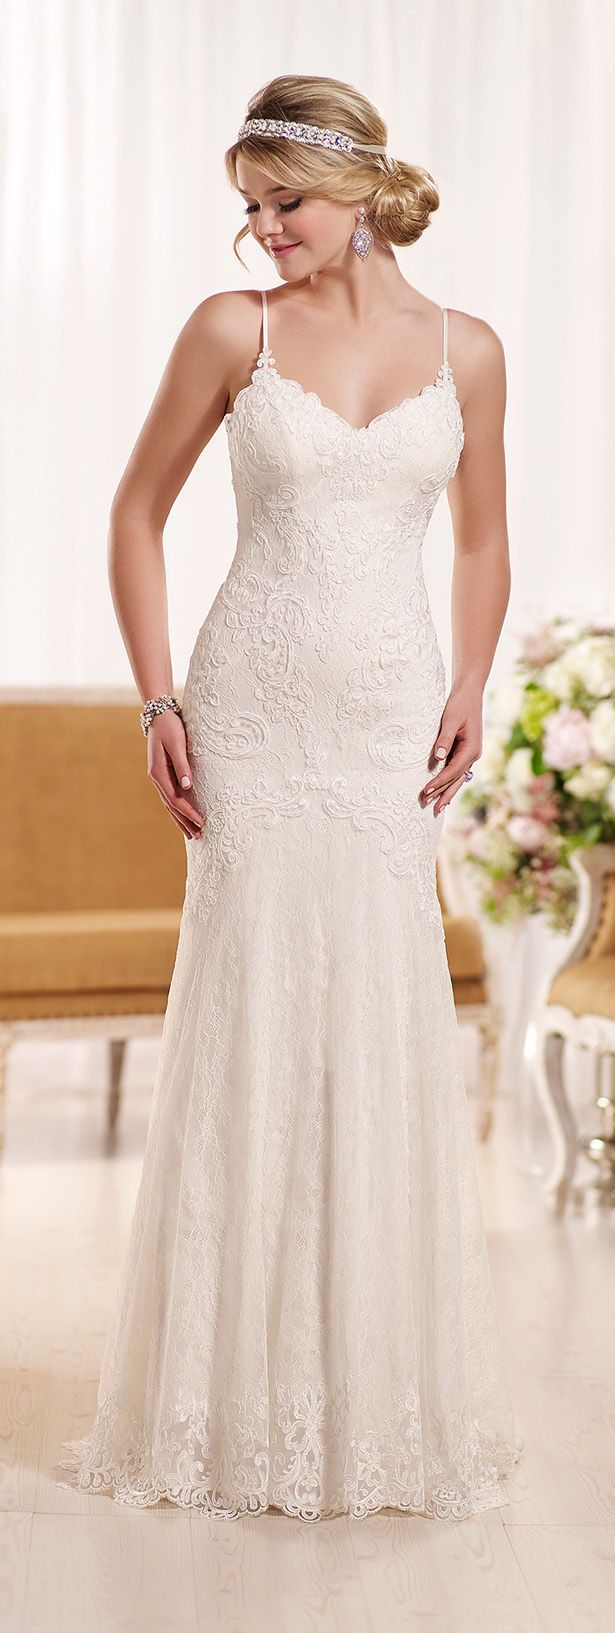 essence wedding dresses best 25 essence wedding dresses ideas on 3932